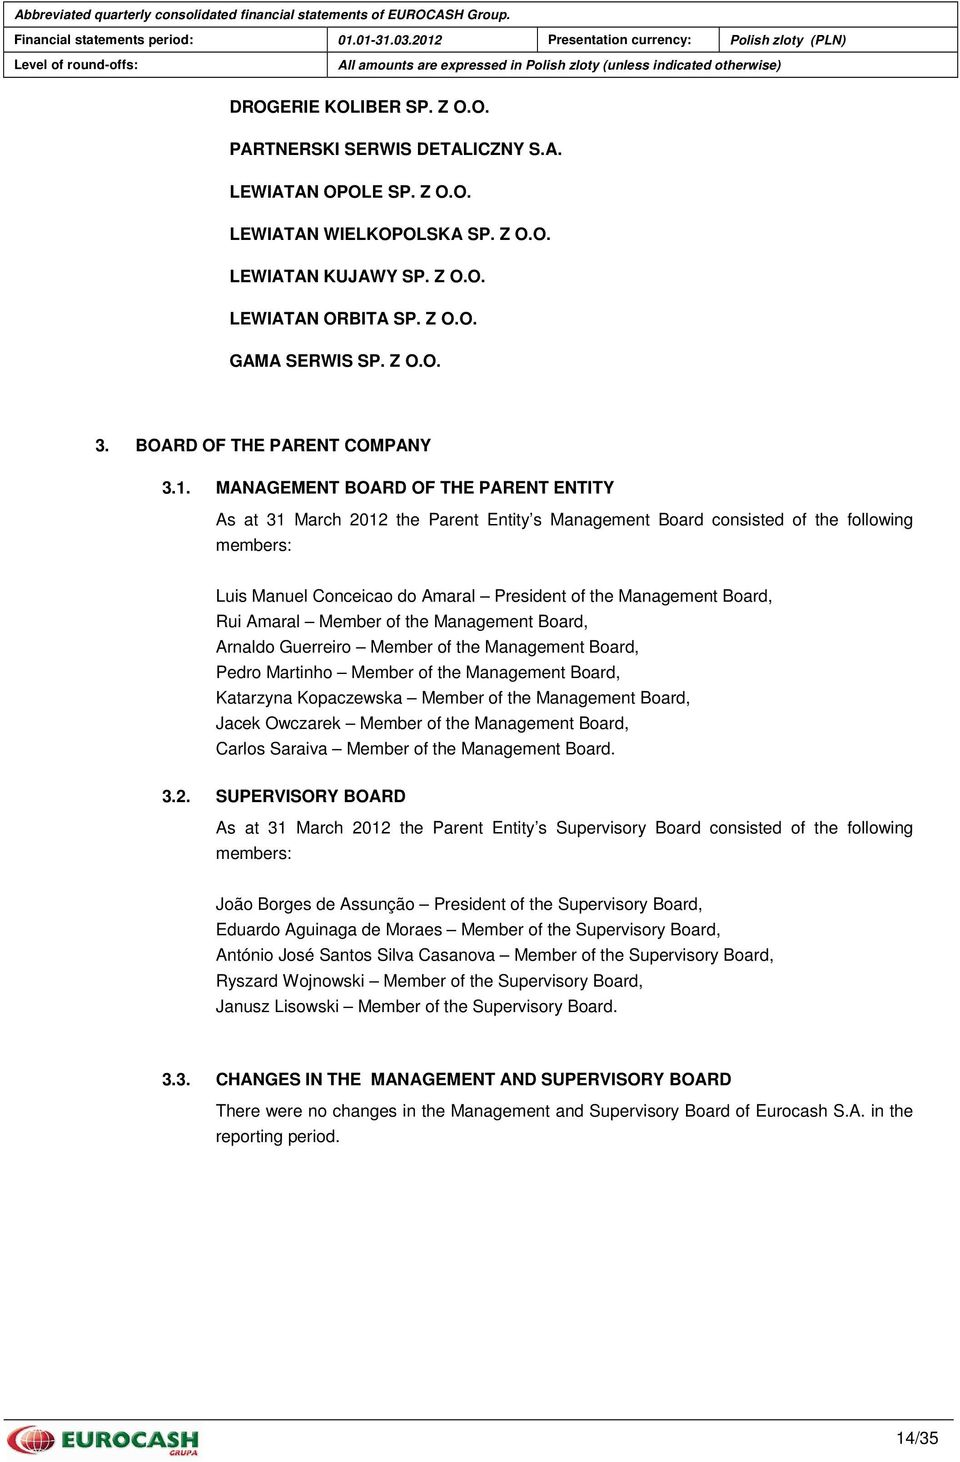 MANAGEMENT BOARD OF THE PARENT ENTITY As at 31 March 2012 the Parent Entity s Management Board consisted of the following members: Luis Manuel Conceicao do Amaral President of the Management Board,